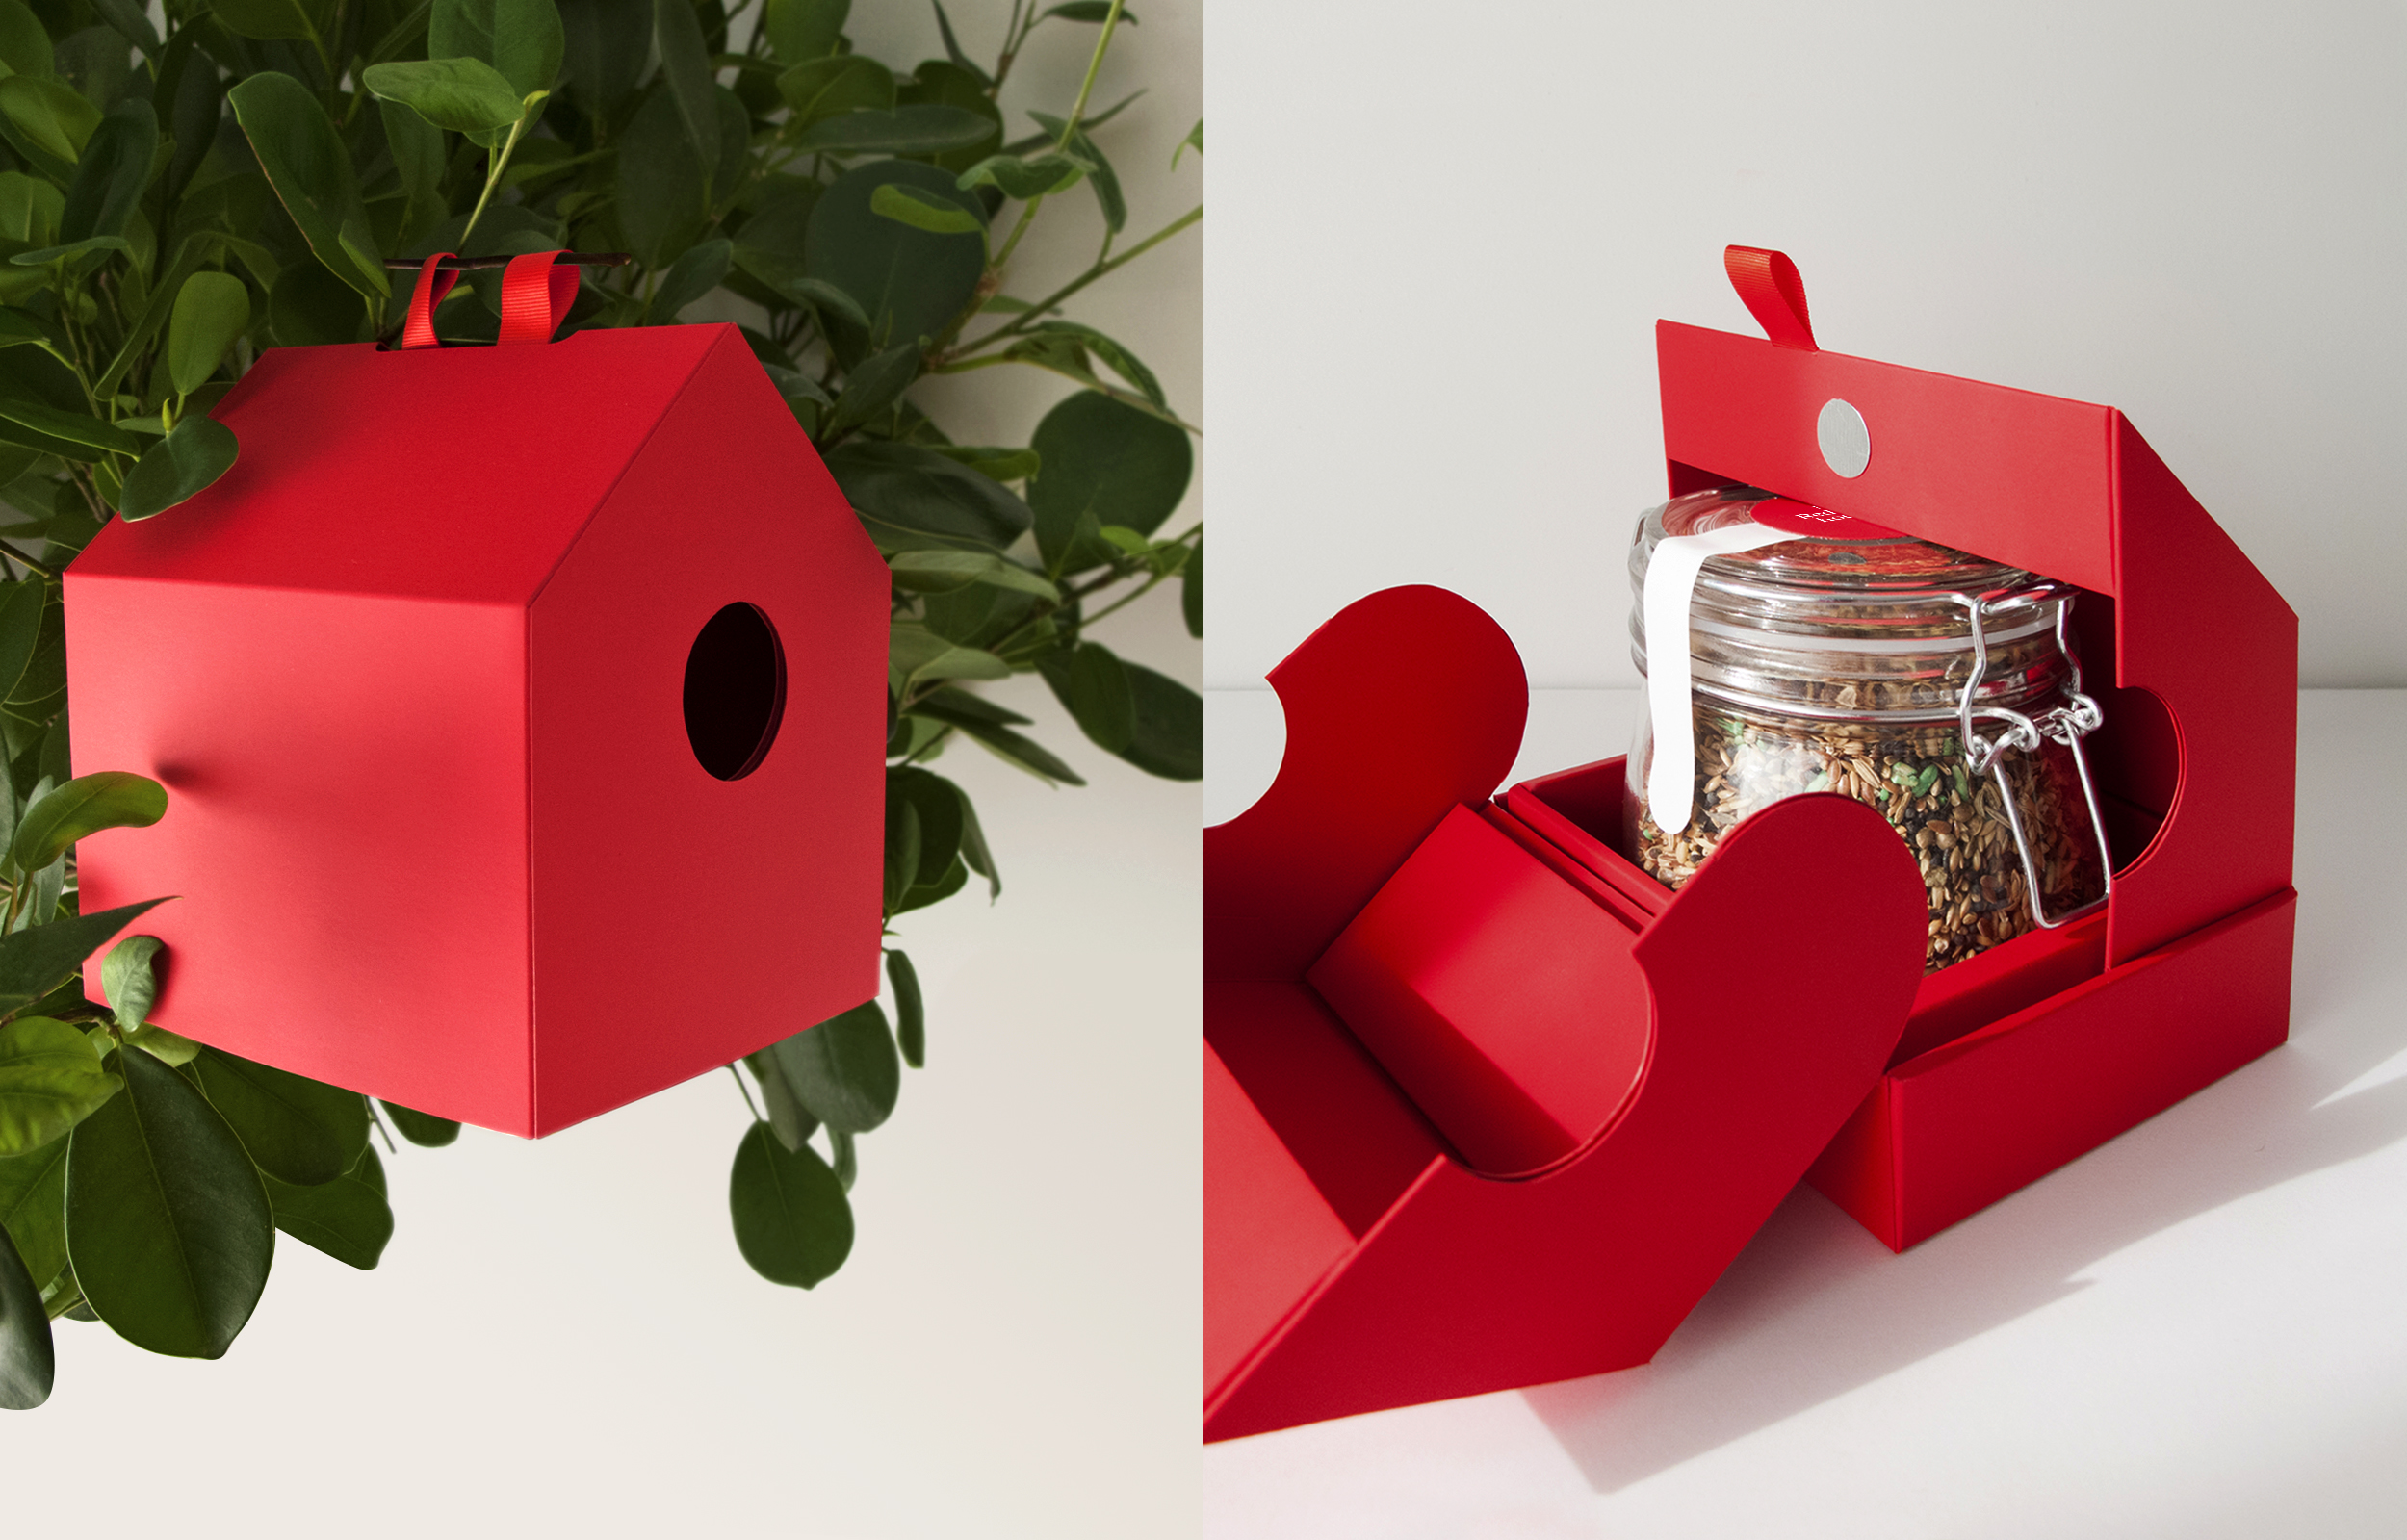 Red Birdhouse by Laura Garcia Mut - Creative Work - $i